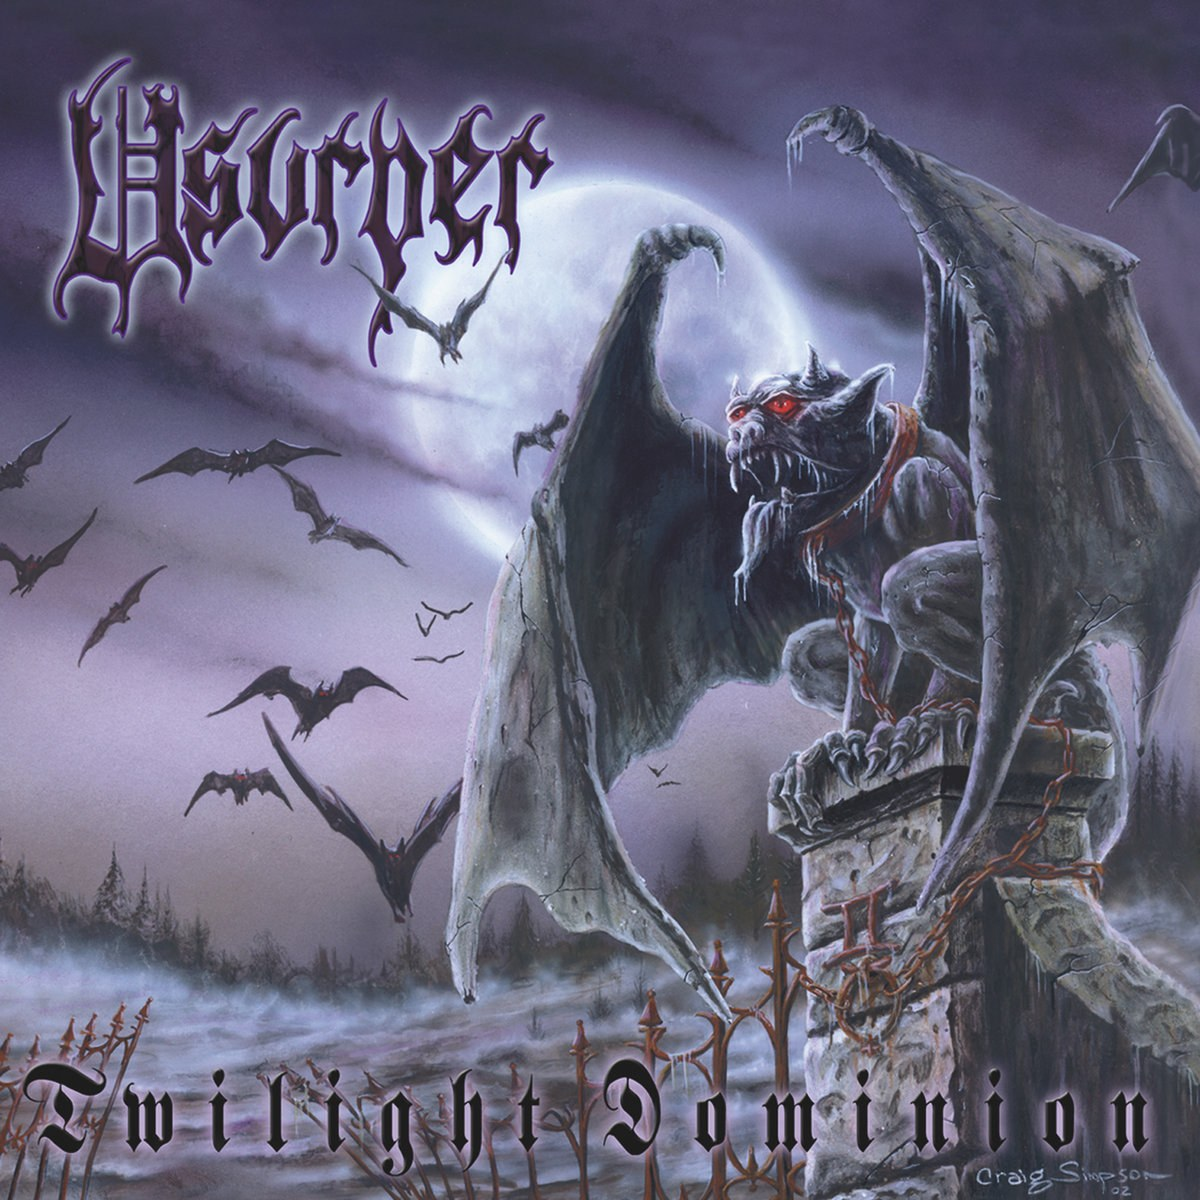 Review for Usurper - Twilight Dominion